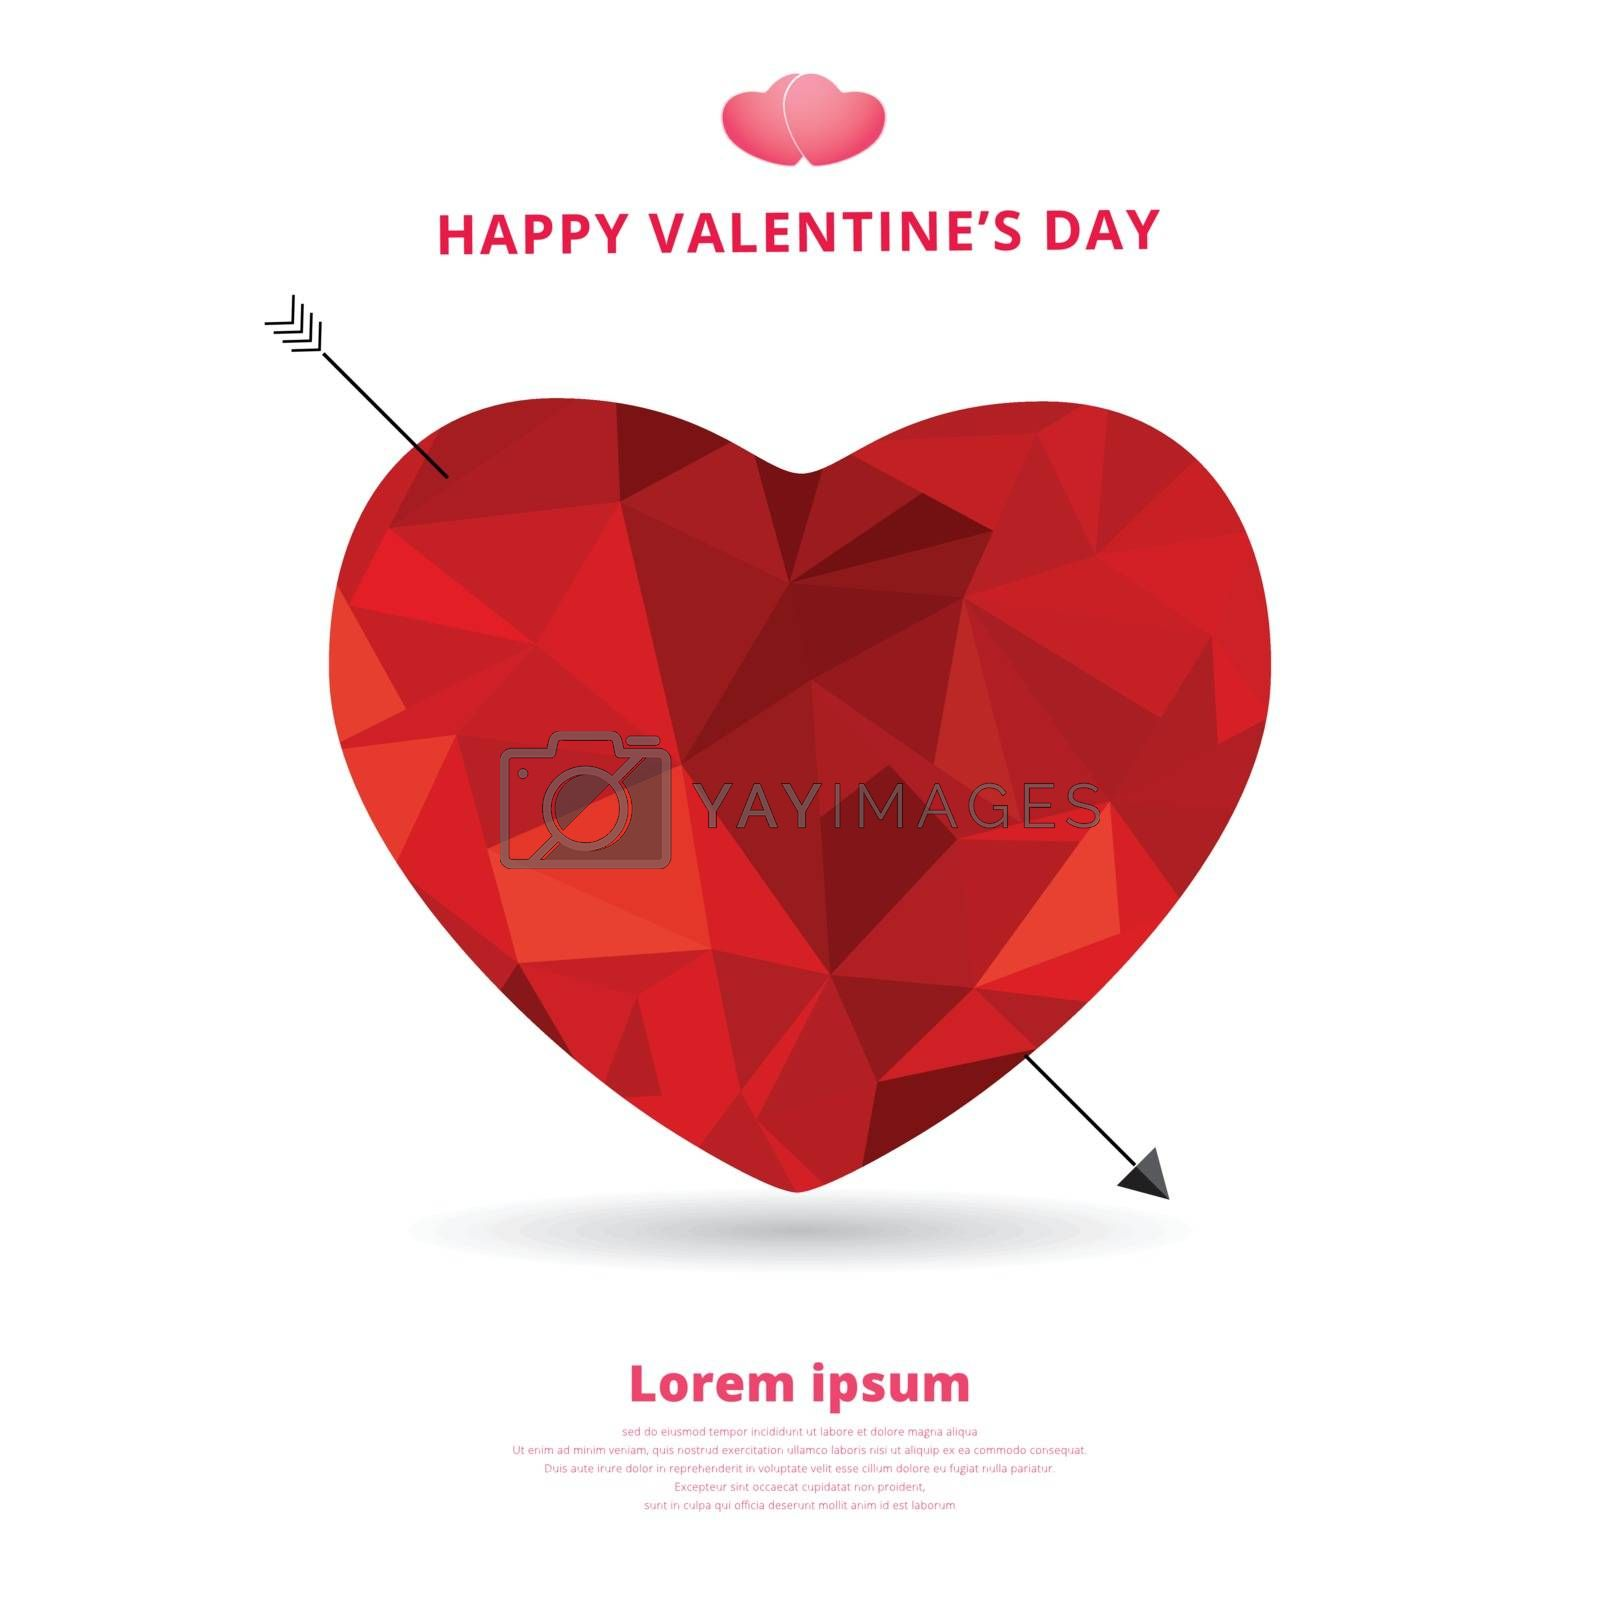 3d origami heart low polygon design with arrow and shadow for valentines day. vector illustration.